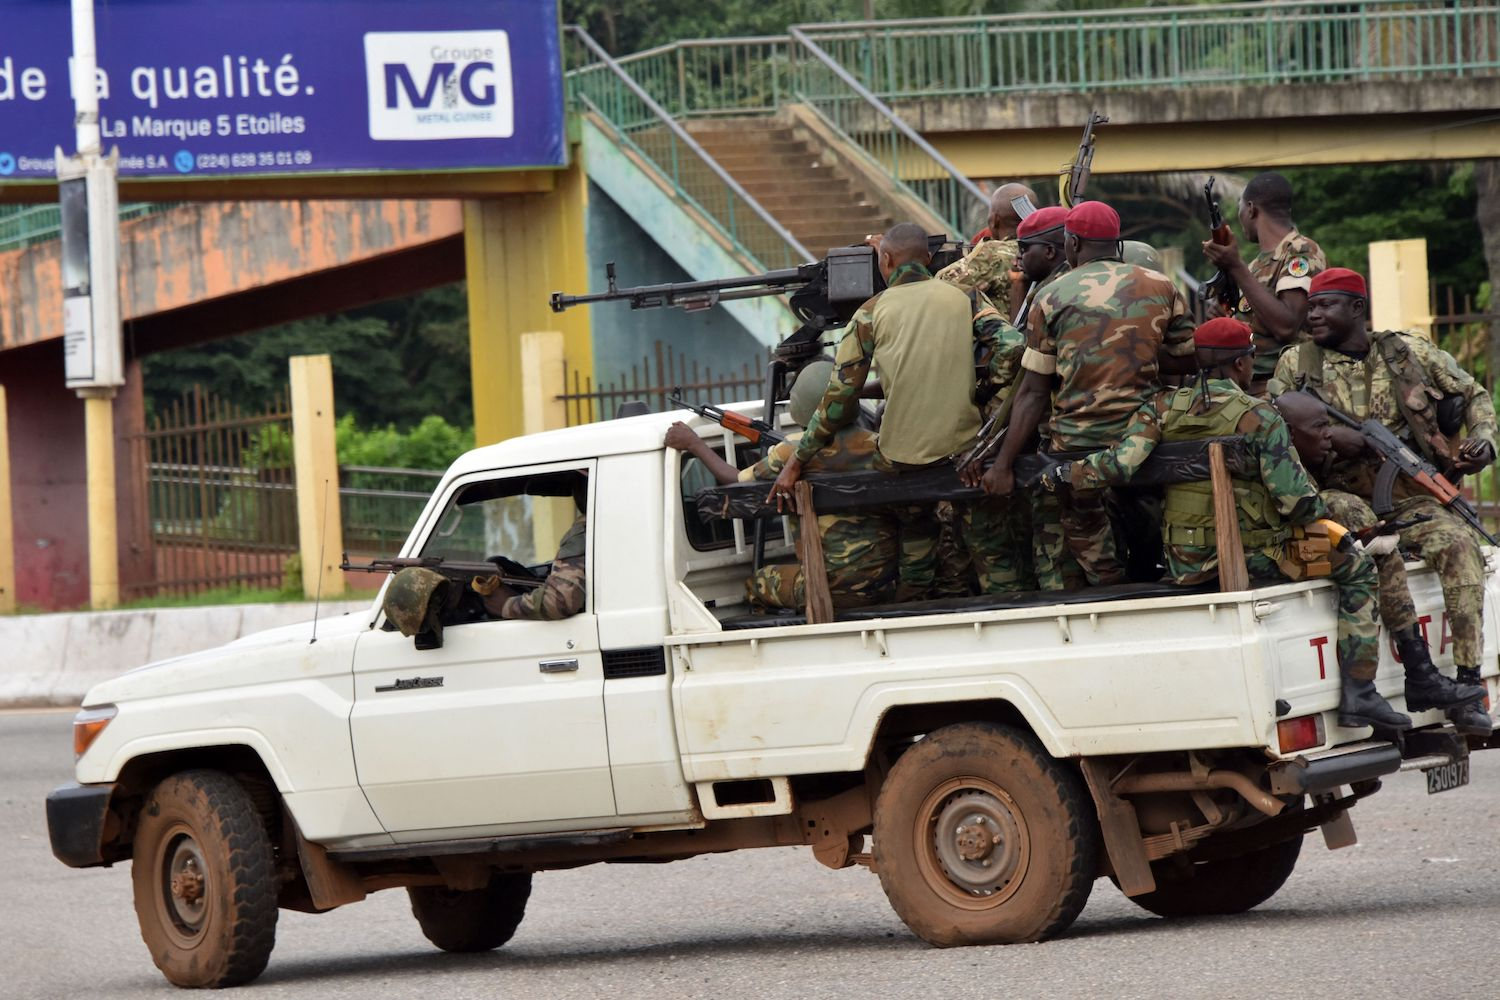 Soldiers from Guinea drive through the Guinean capital of Conakry amid a military overthrow of Guinean President Alpha Condé.